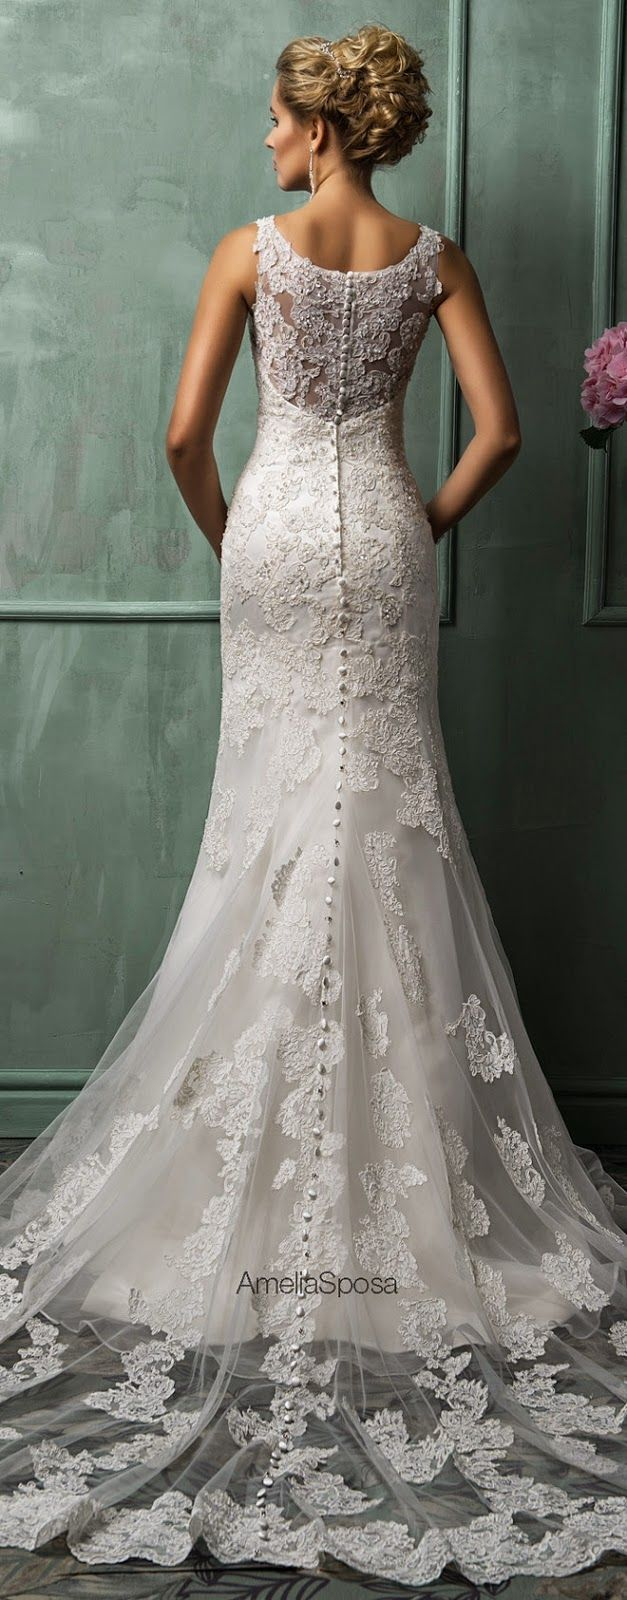 Amelia sposa 2014 wedding dresses wedding dressses for Amelia sposa wedding dress